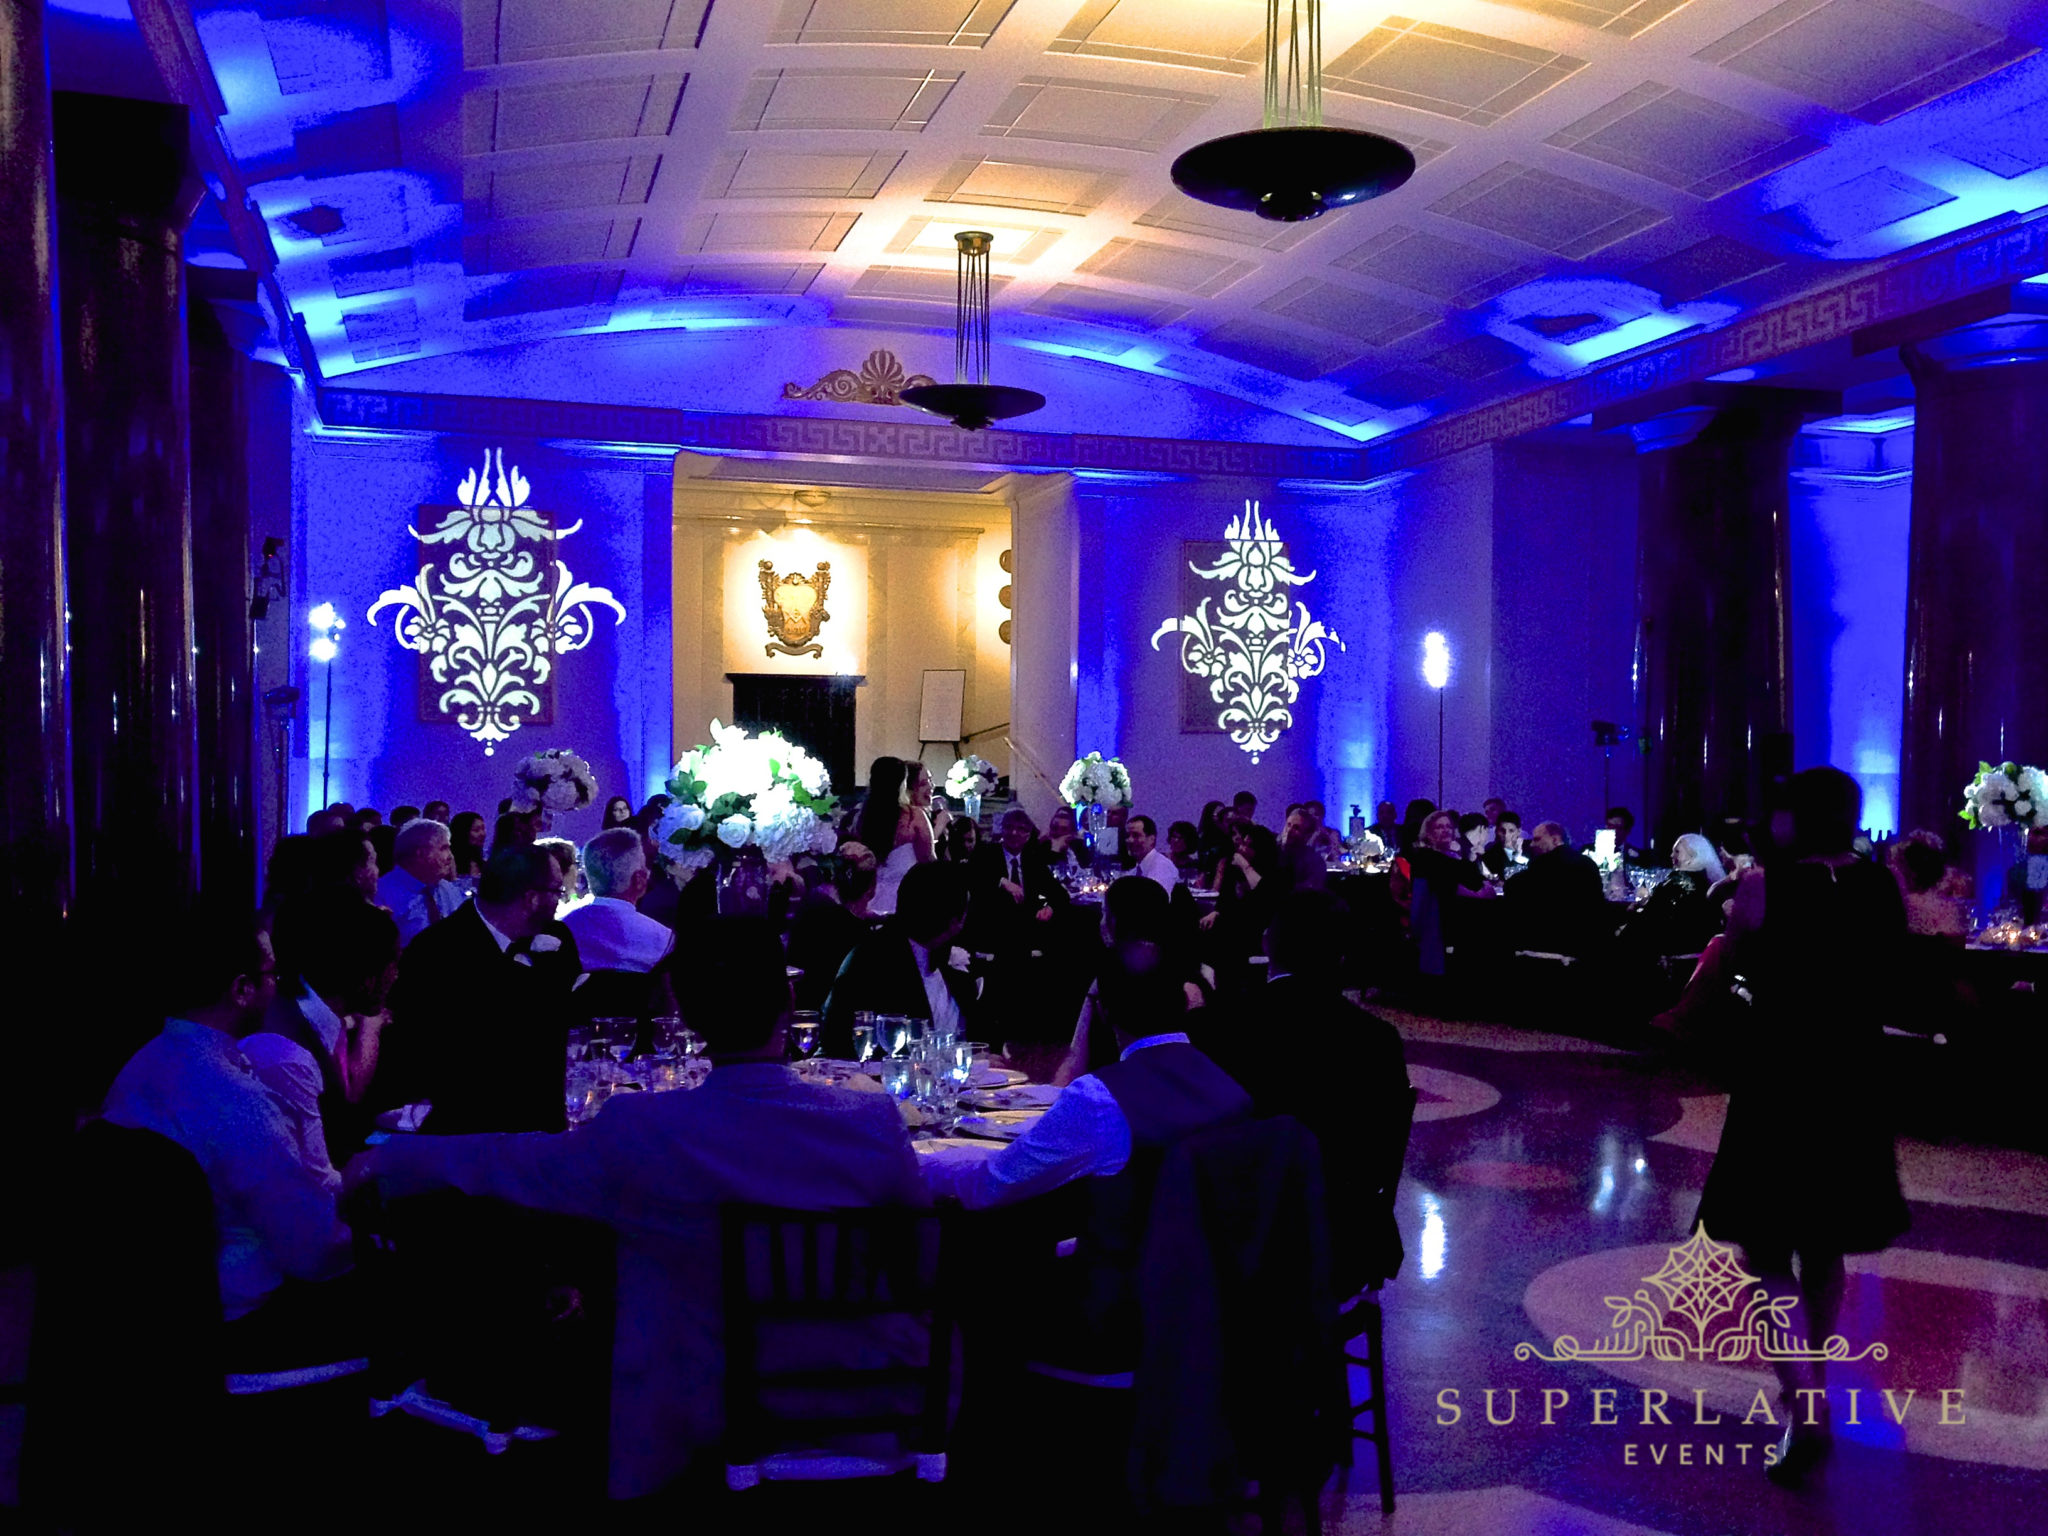 Damask Texture Lighting With Blue Uplighting Gobo